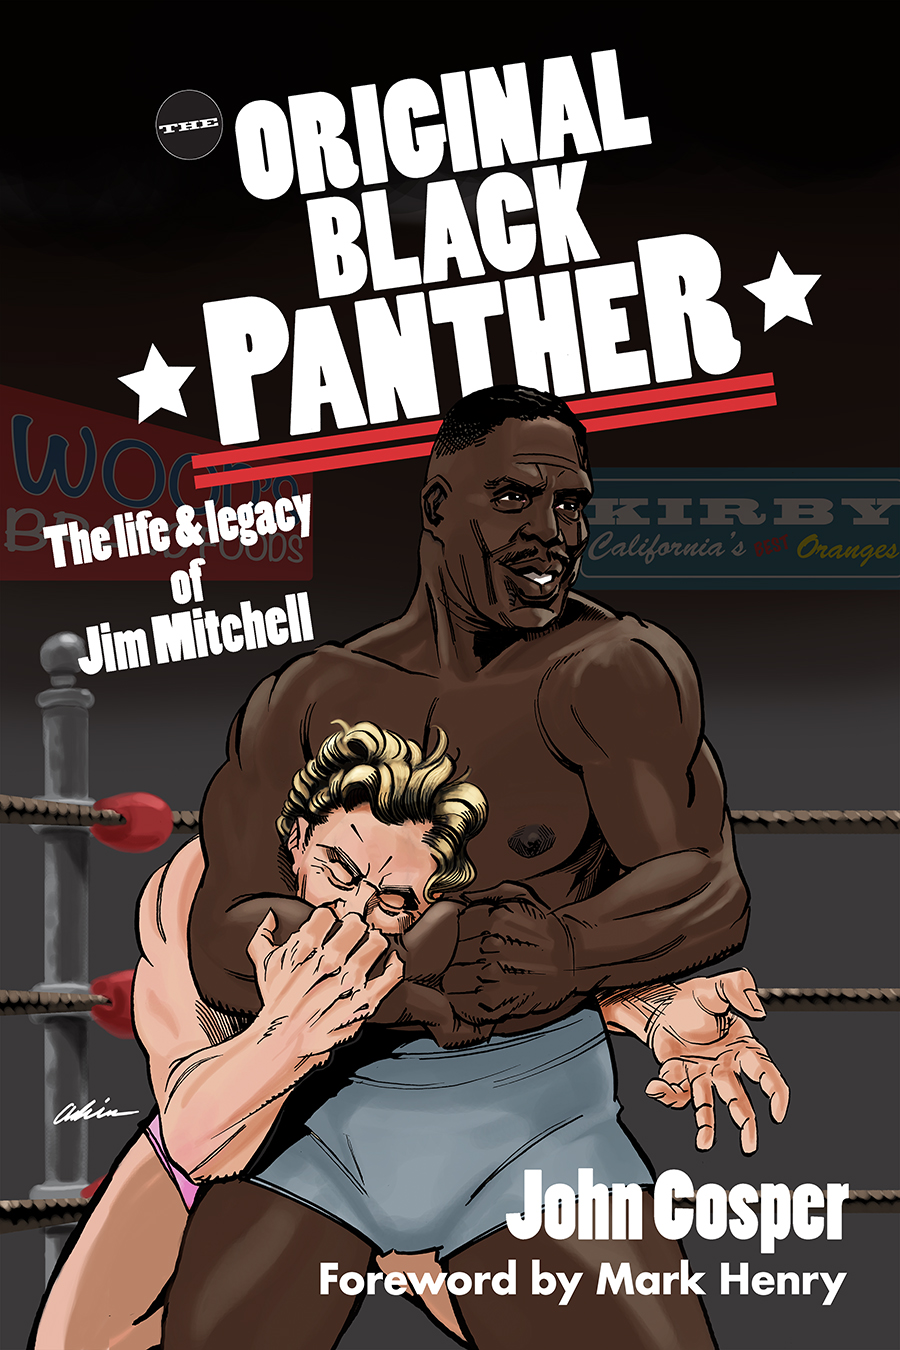 Jim Mitchell - The Original Black Panther